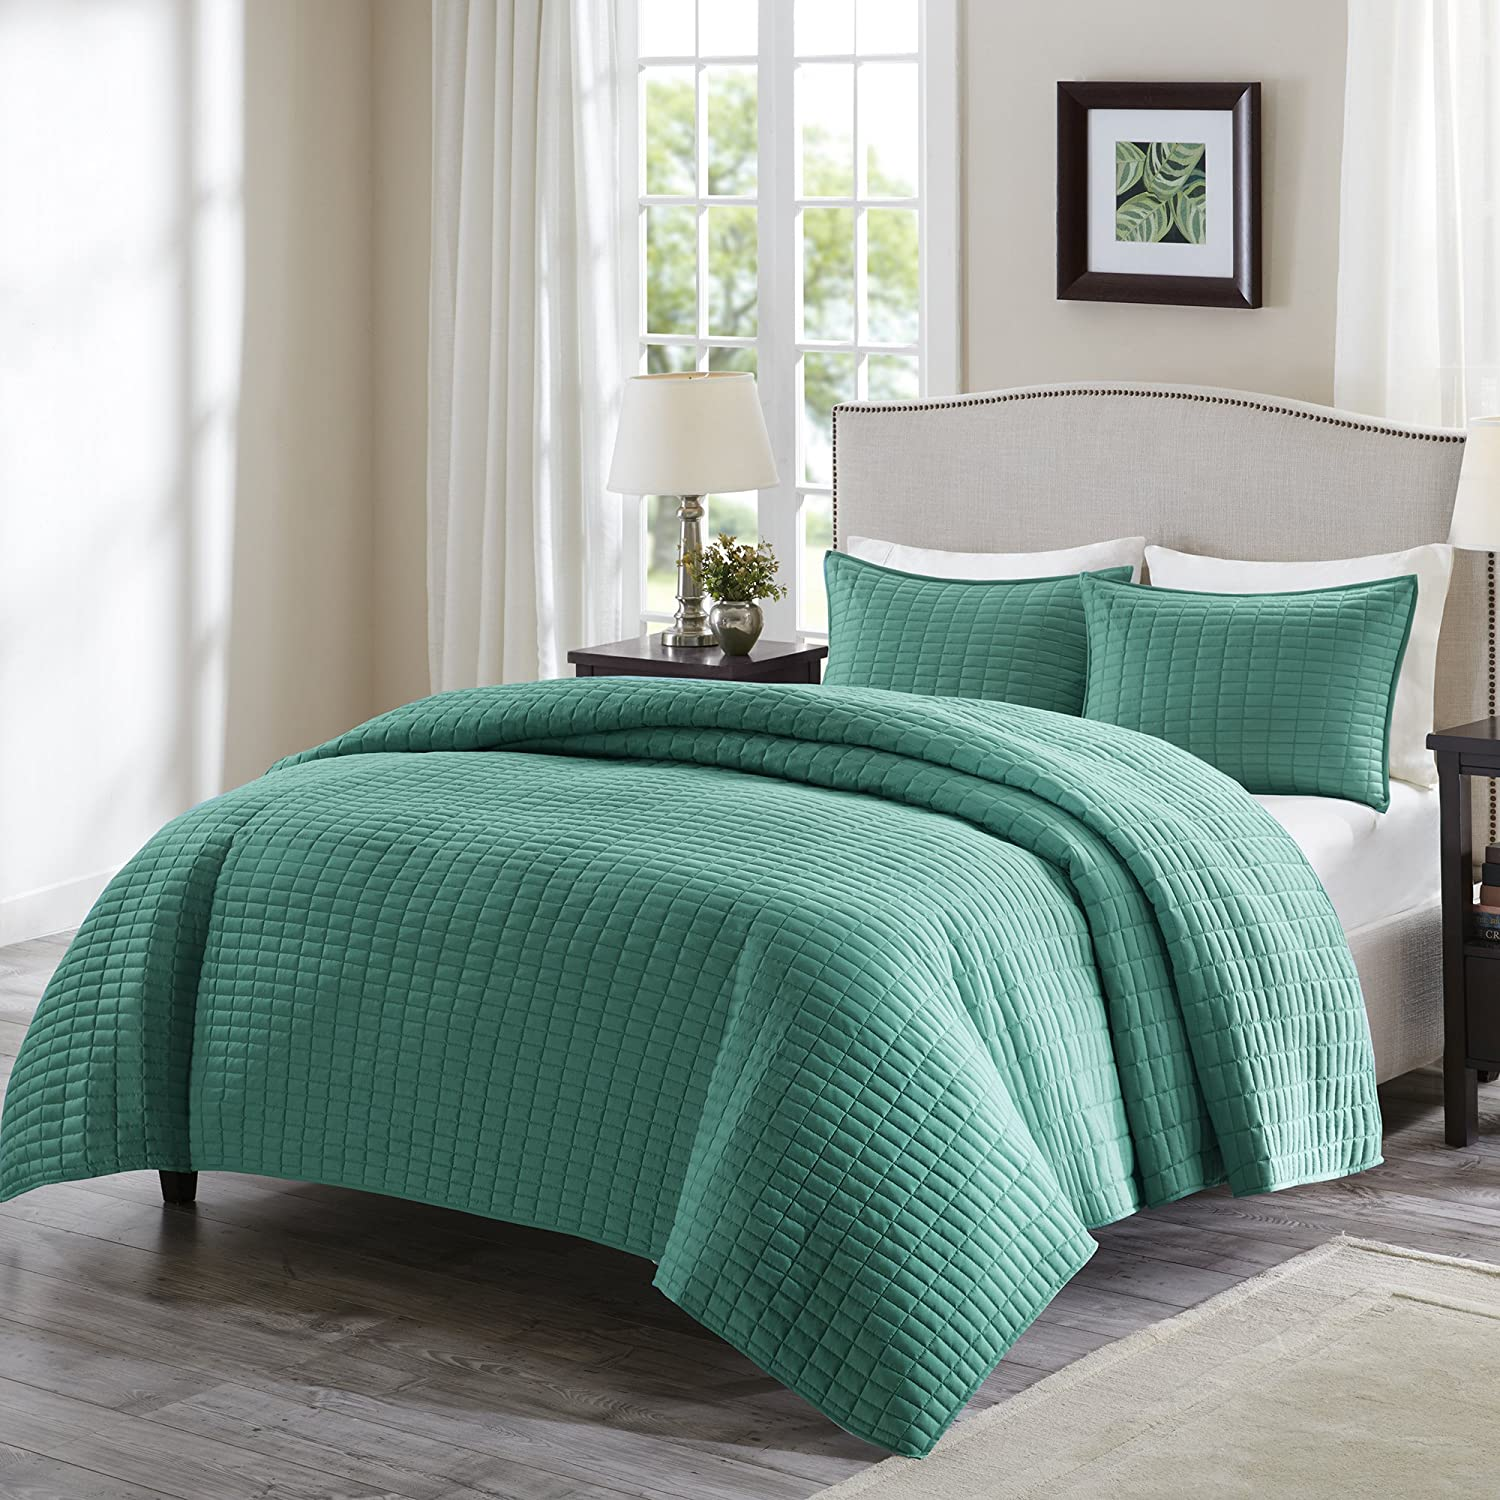 Comfort Spaces Kienna 3 Piece Queen Quilt Set Full Reversible Solid Stitch Pattern Soft Microfiber Light-Weight Coverlet Bedspread Blanket All Season Bedding, Teal